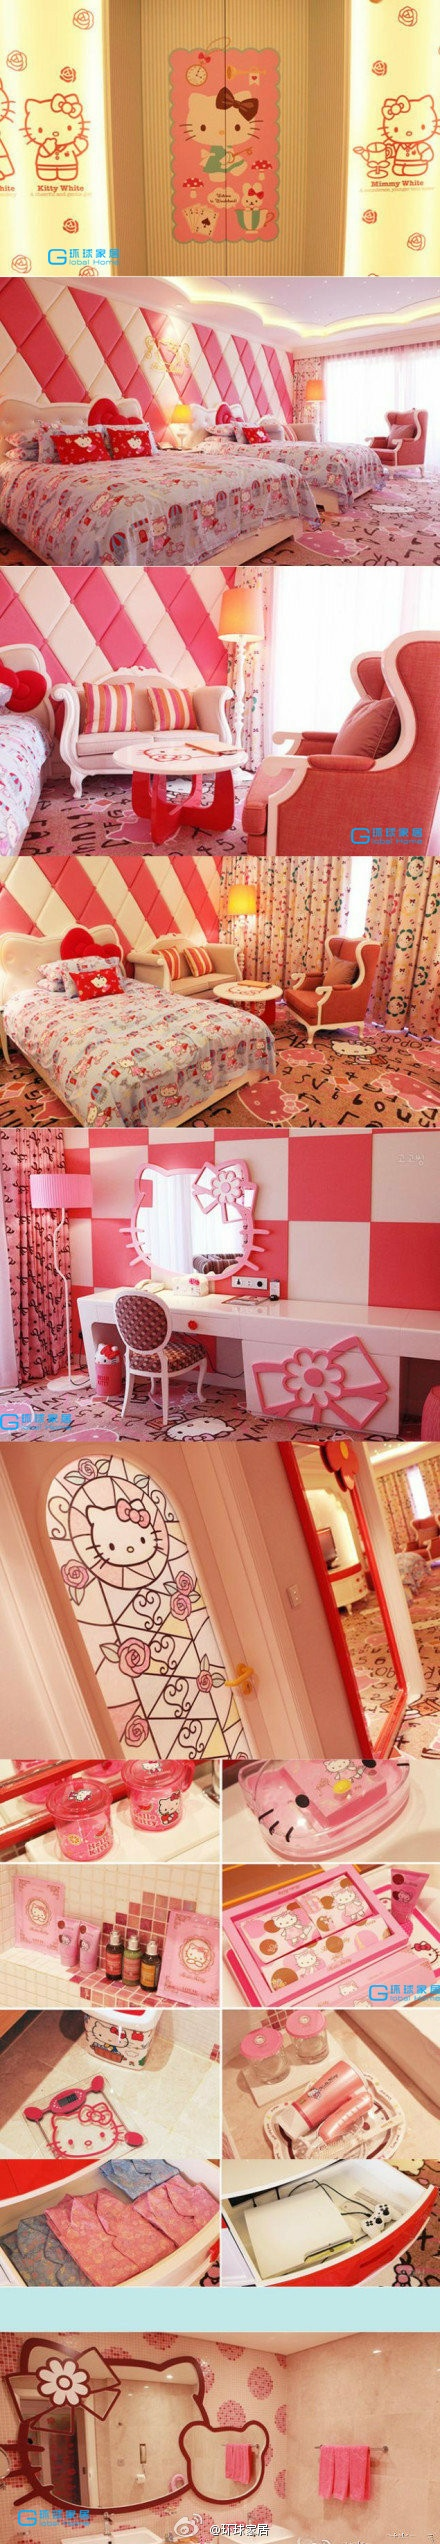 Hello Kitty decorated hotel! How adorable, Hello Kitty Furniture, Bedding, Pictures and more! #HelloKitty #HelloKittyHotel #HelloKittyDecor